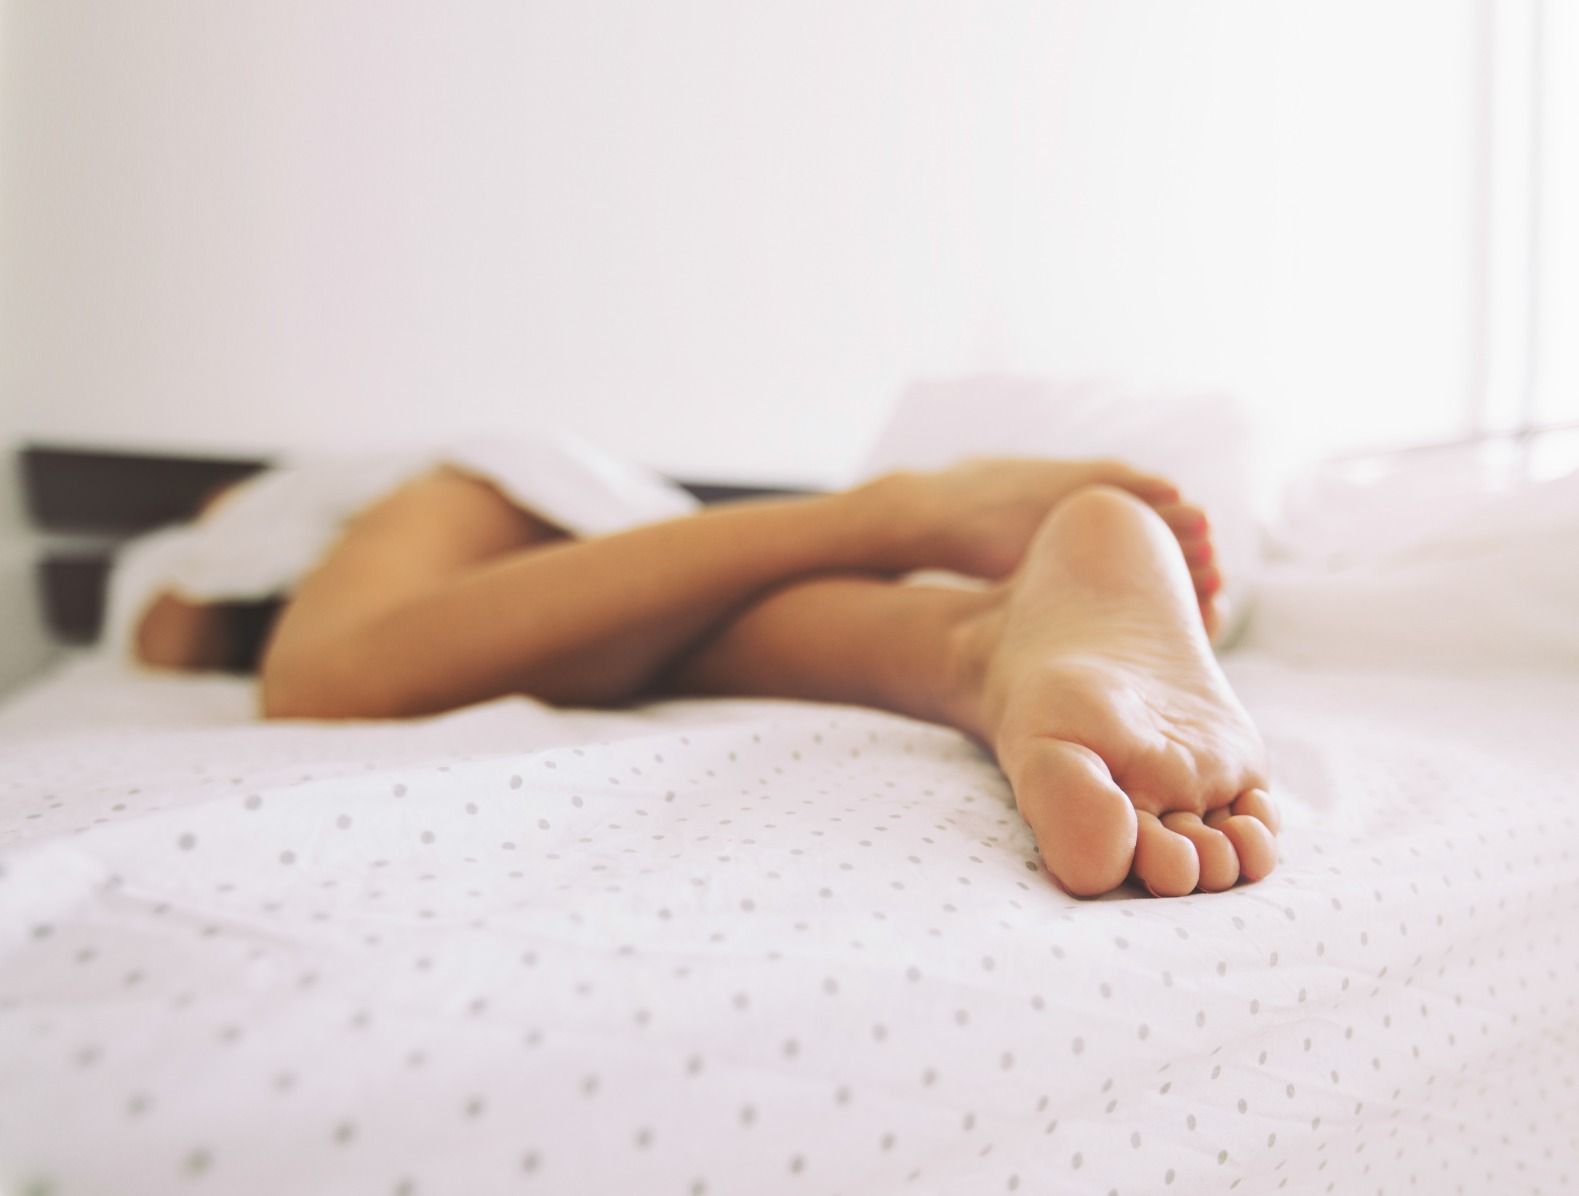 feet-of-a-sleeping-woman-PJMMLDE